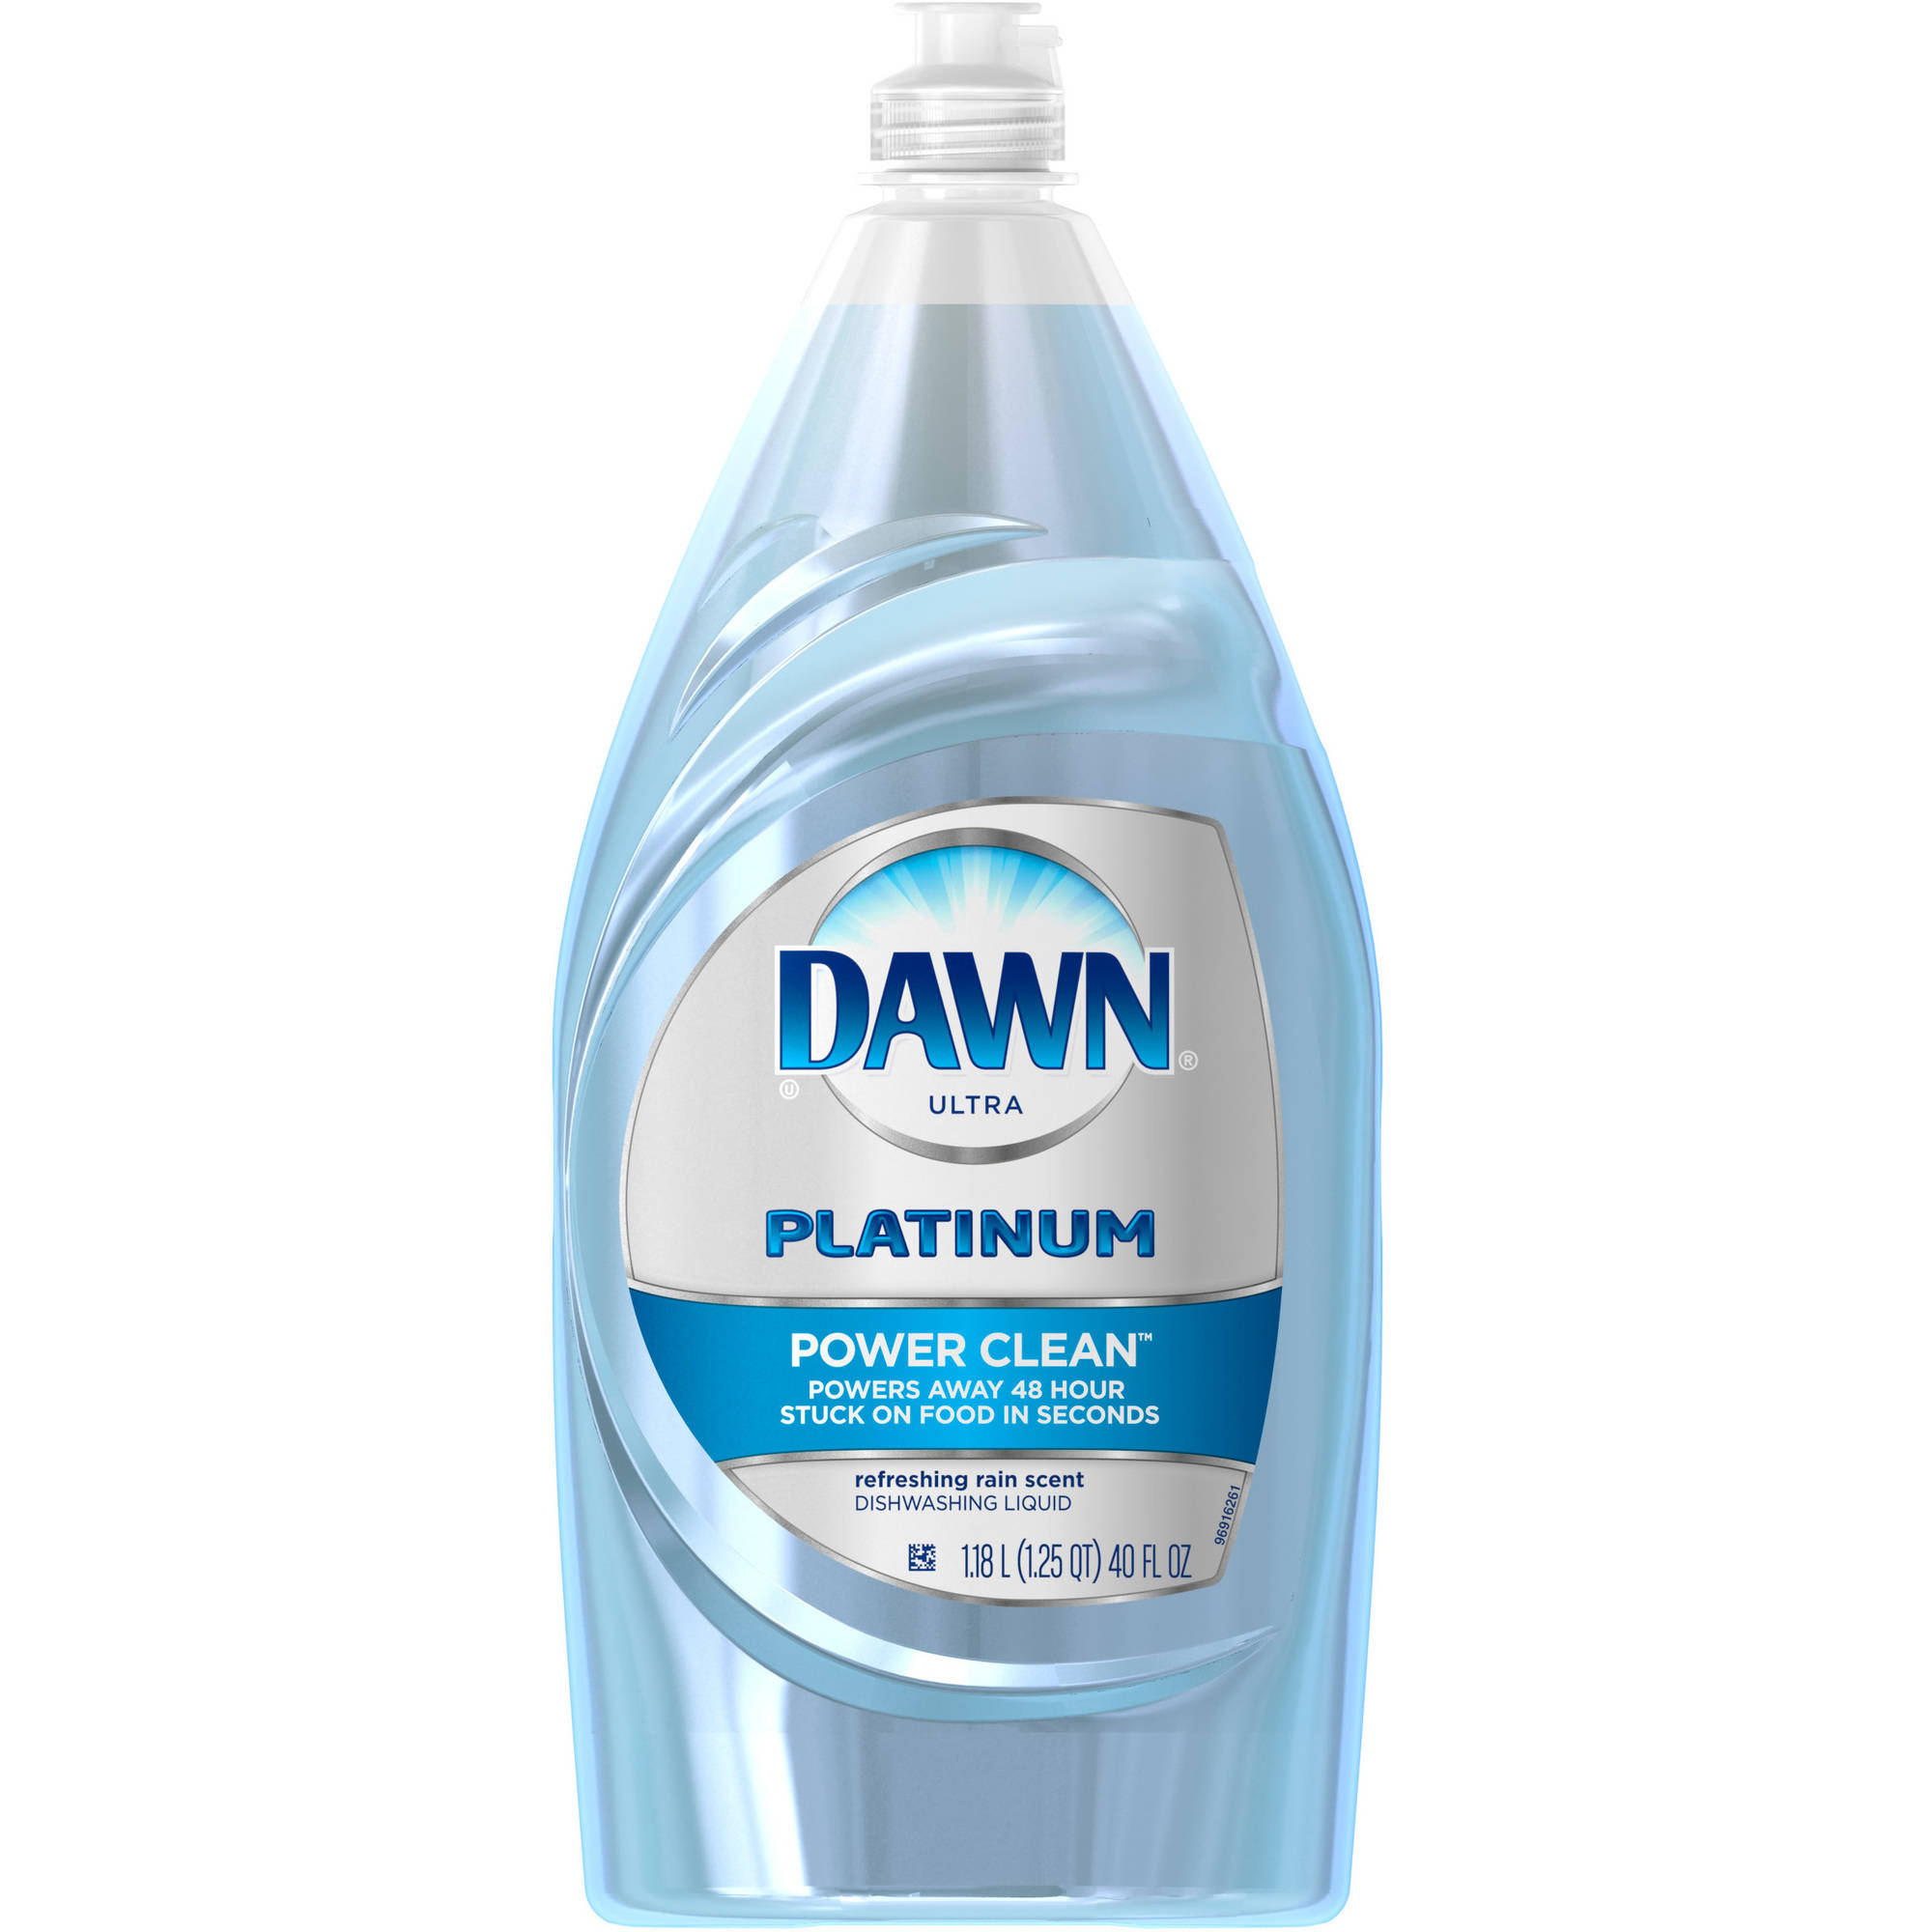 Dawn Platinum Power Clean Dishwashing Liquid Refreshing